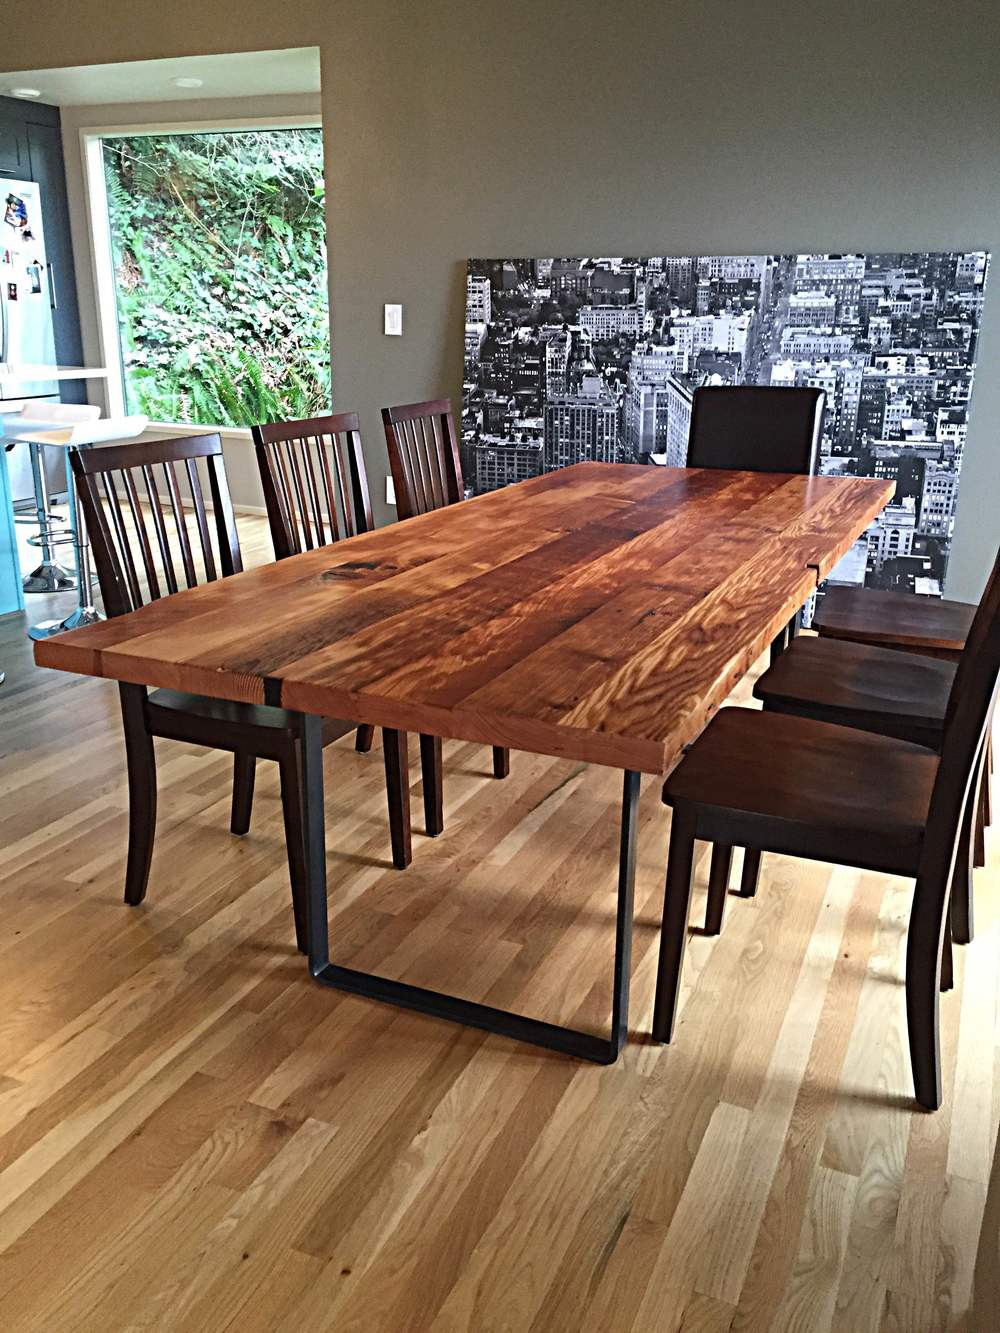 Best ideas about Wood Dining Table . Save or Pin Fremont Reclaimed Douglas Fir Dining Table — Stumptown Now.